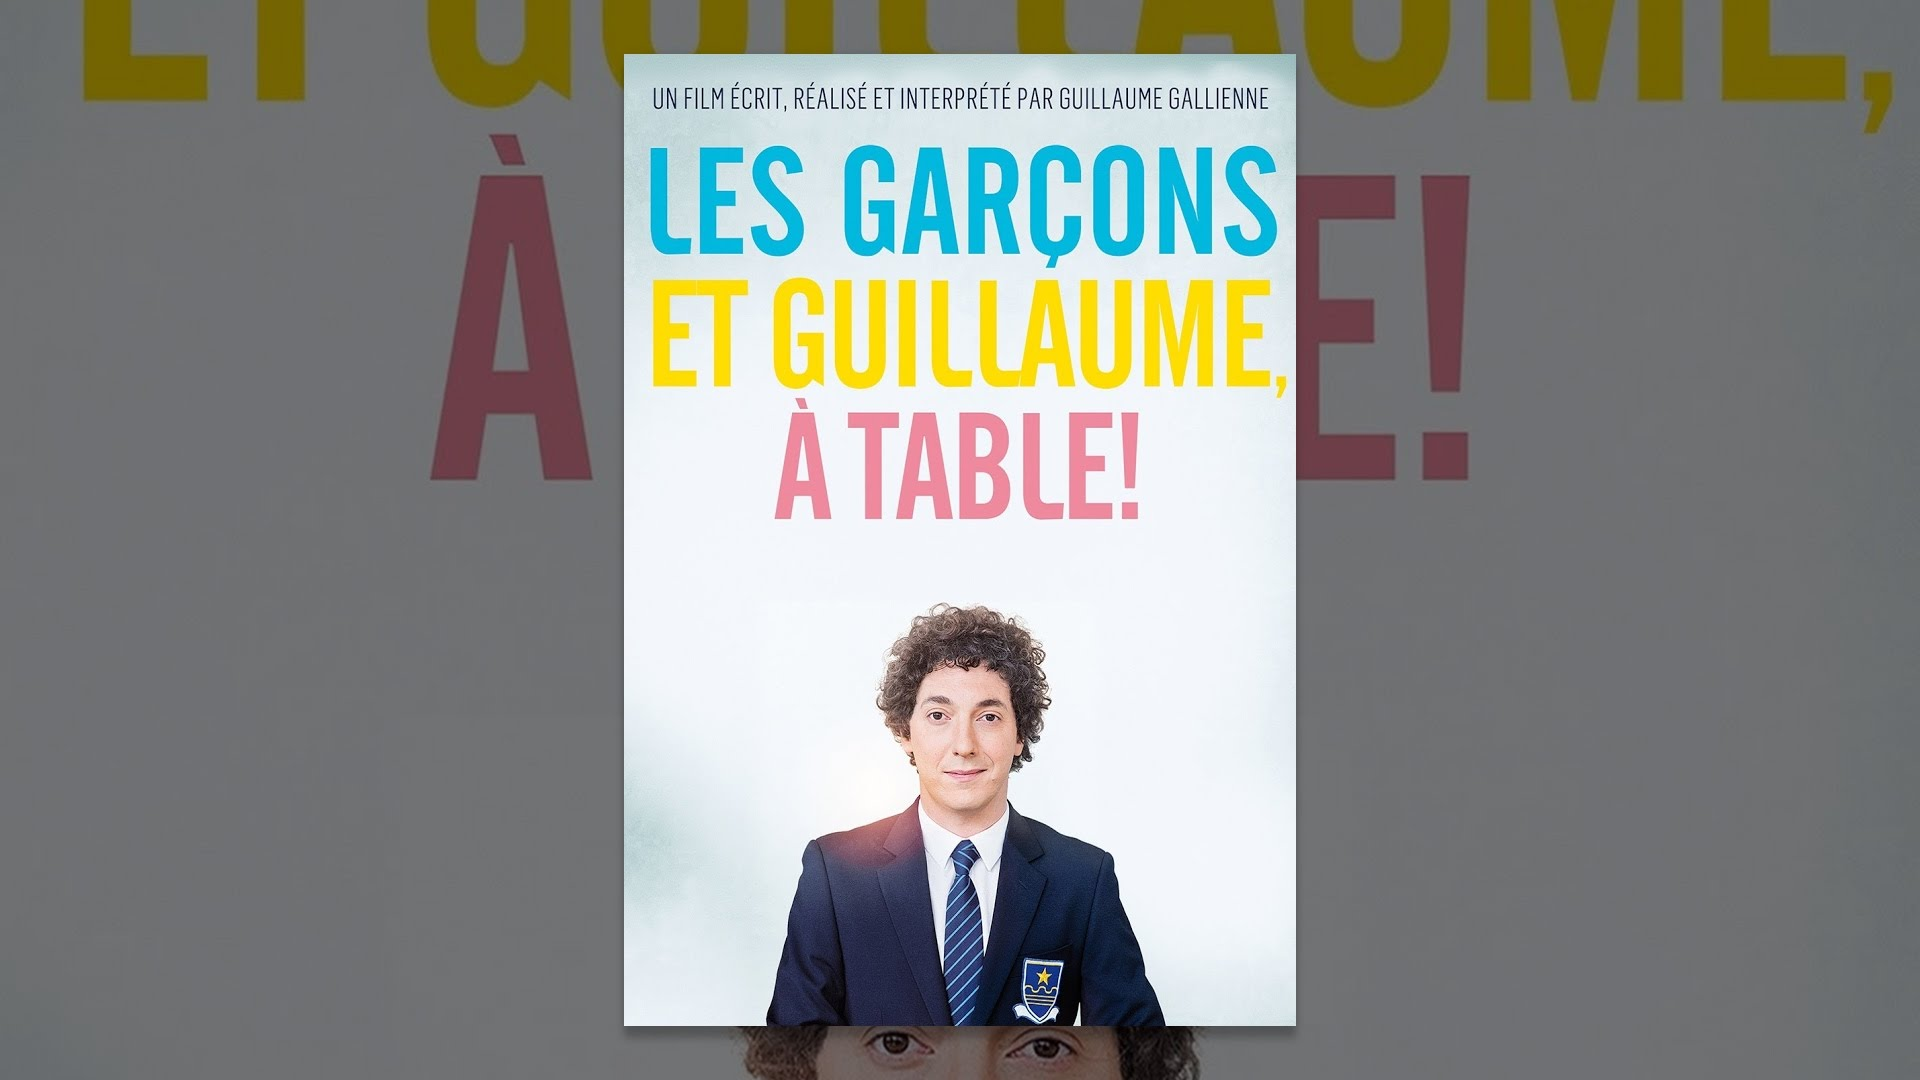 Les garcons et guillaume a table youtube - Guillaume les garcons a table streaming ...